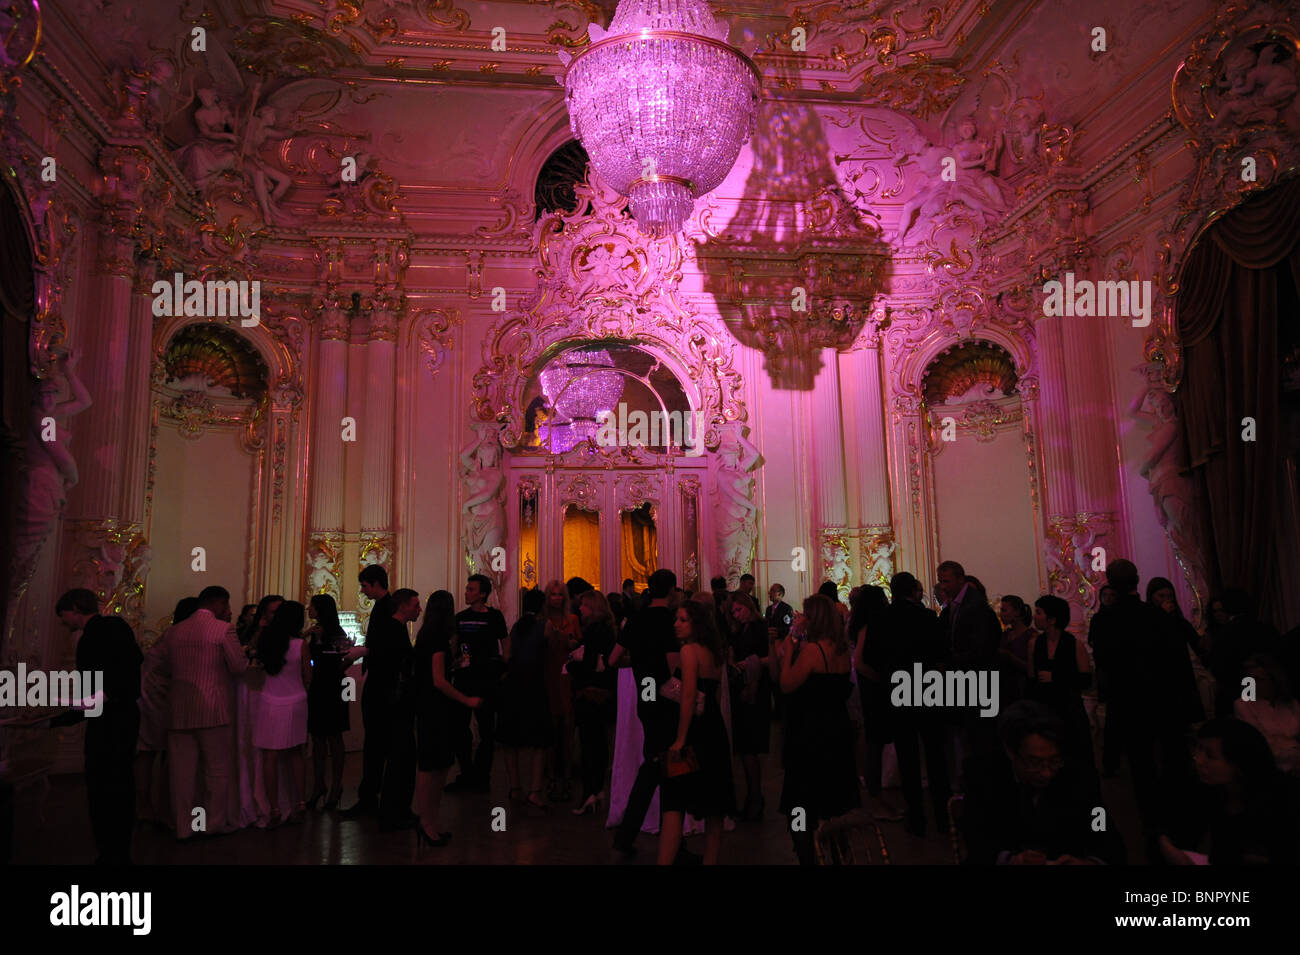 Guests in the Baron von Derviz Mansion, Saint Petersburg, Russia - Stock Image